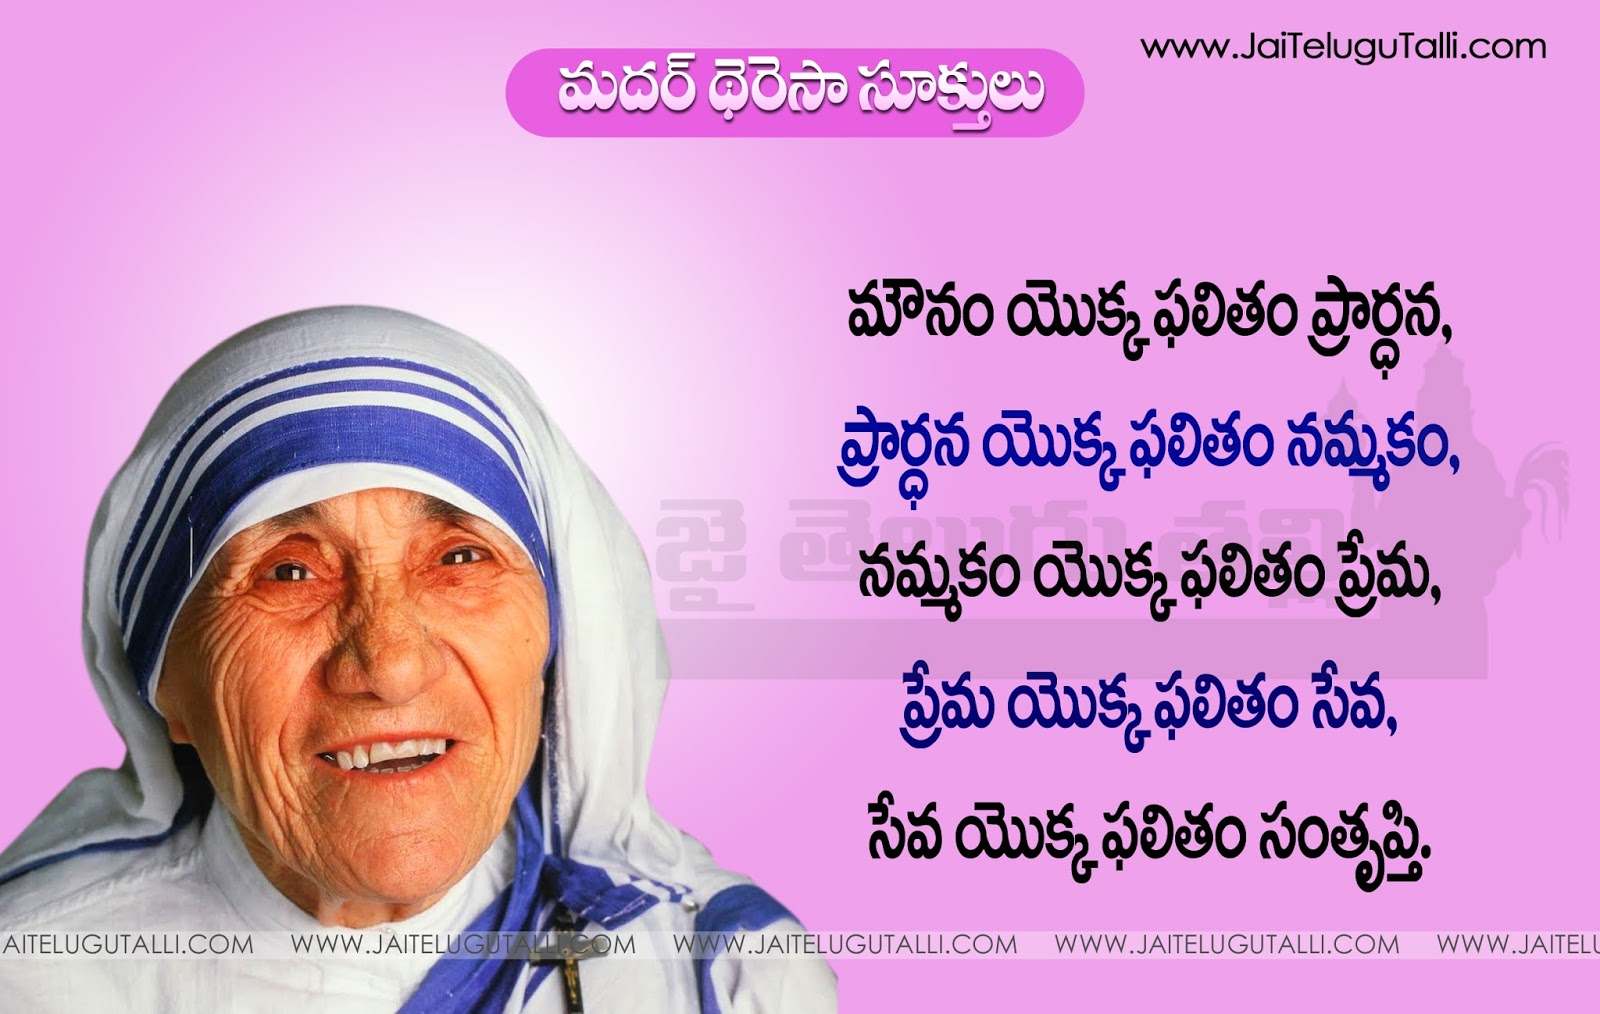 Beautiful Telugu Quotes And Life Inspirational Thoughts By Mother